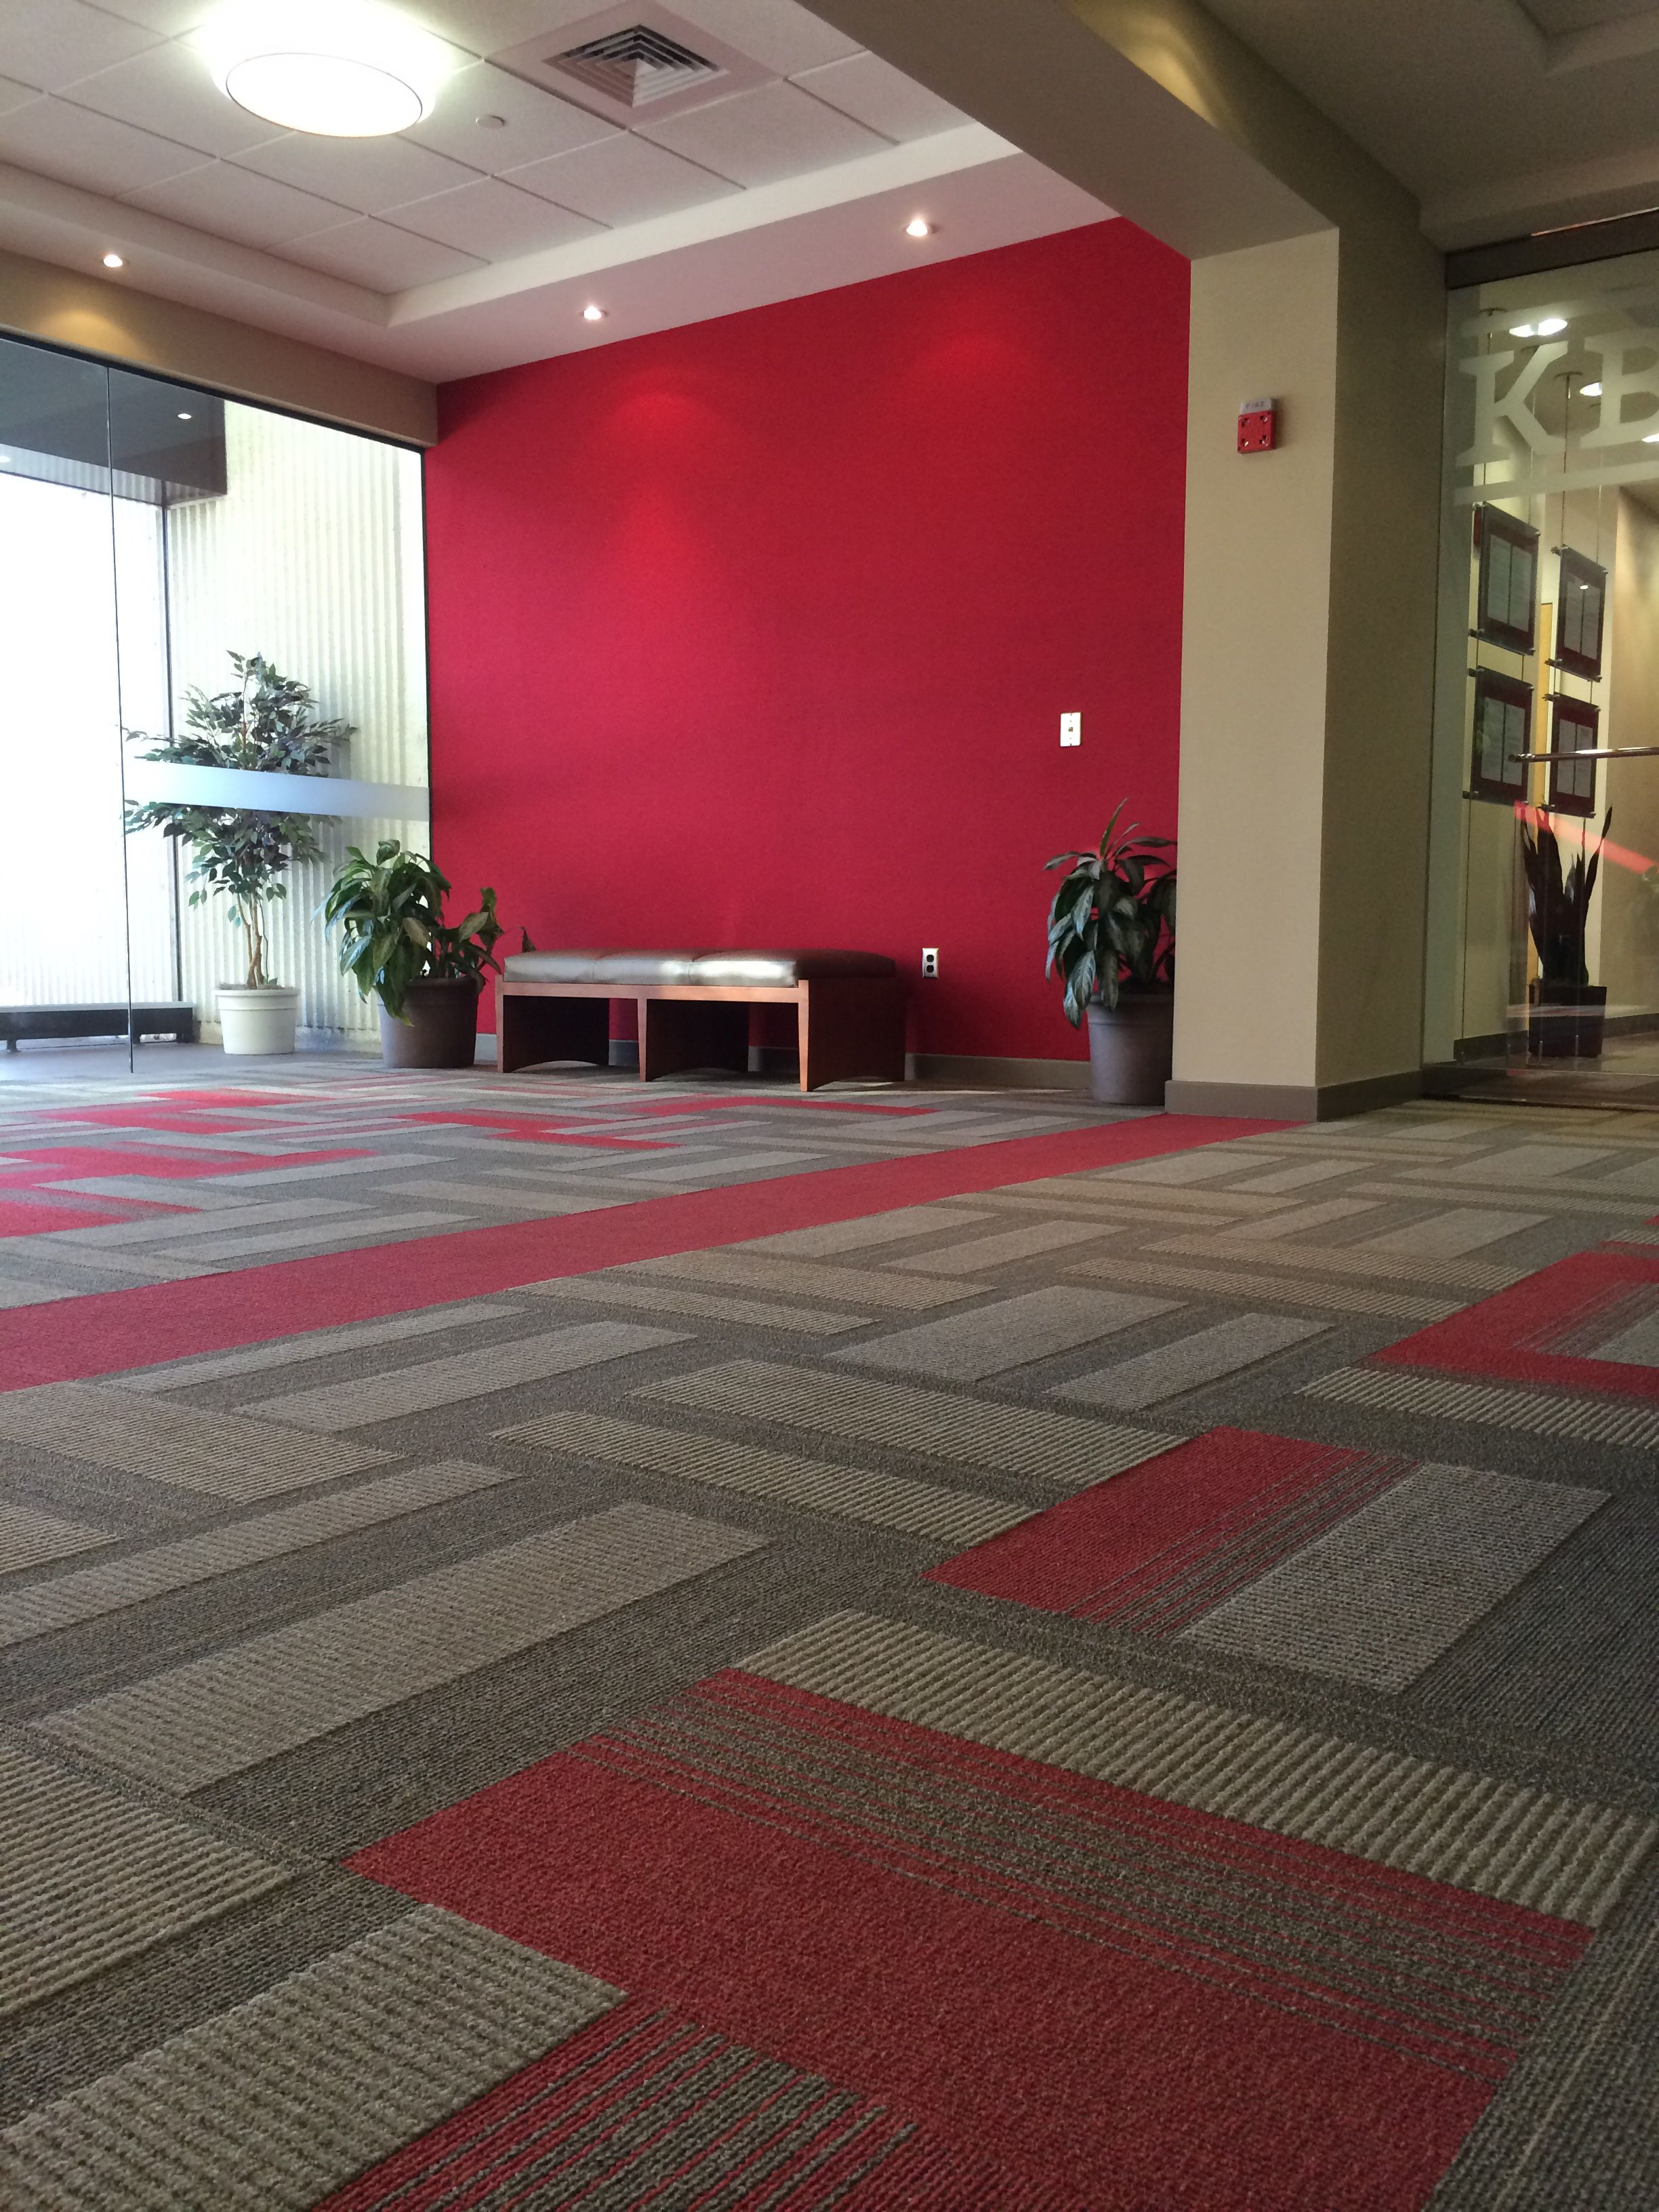 Suite Tie And Svelte Wall Covering By Ef Contract Carpet Square Design Commercial Carpet Design Carpet Tiles